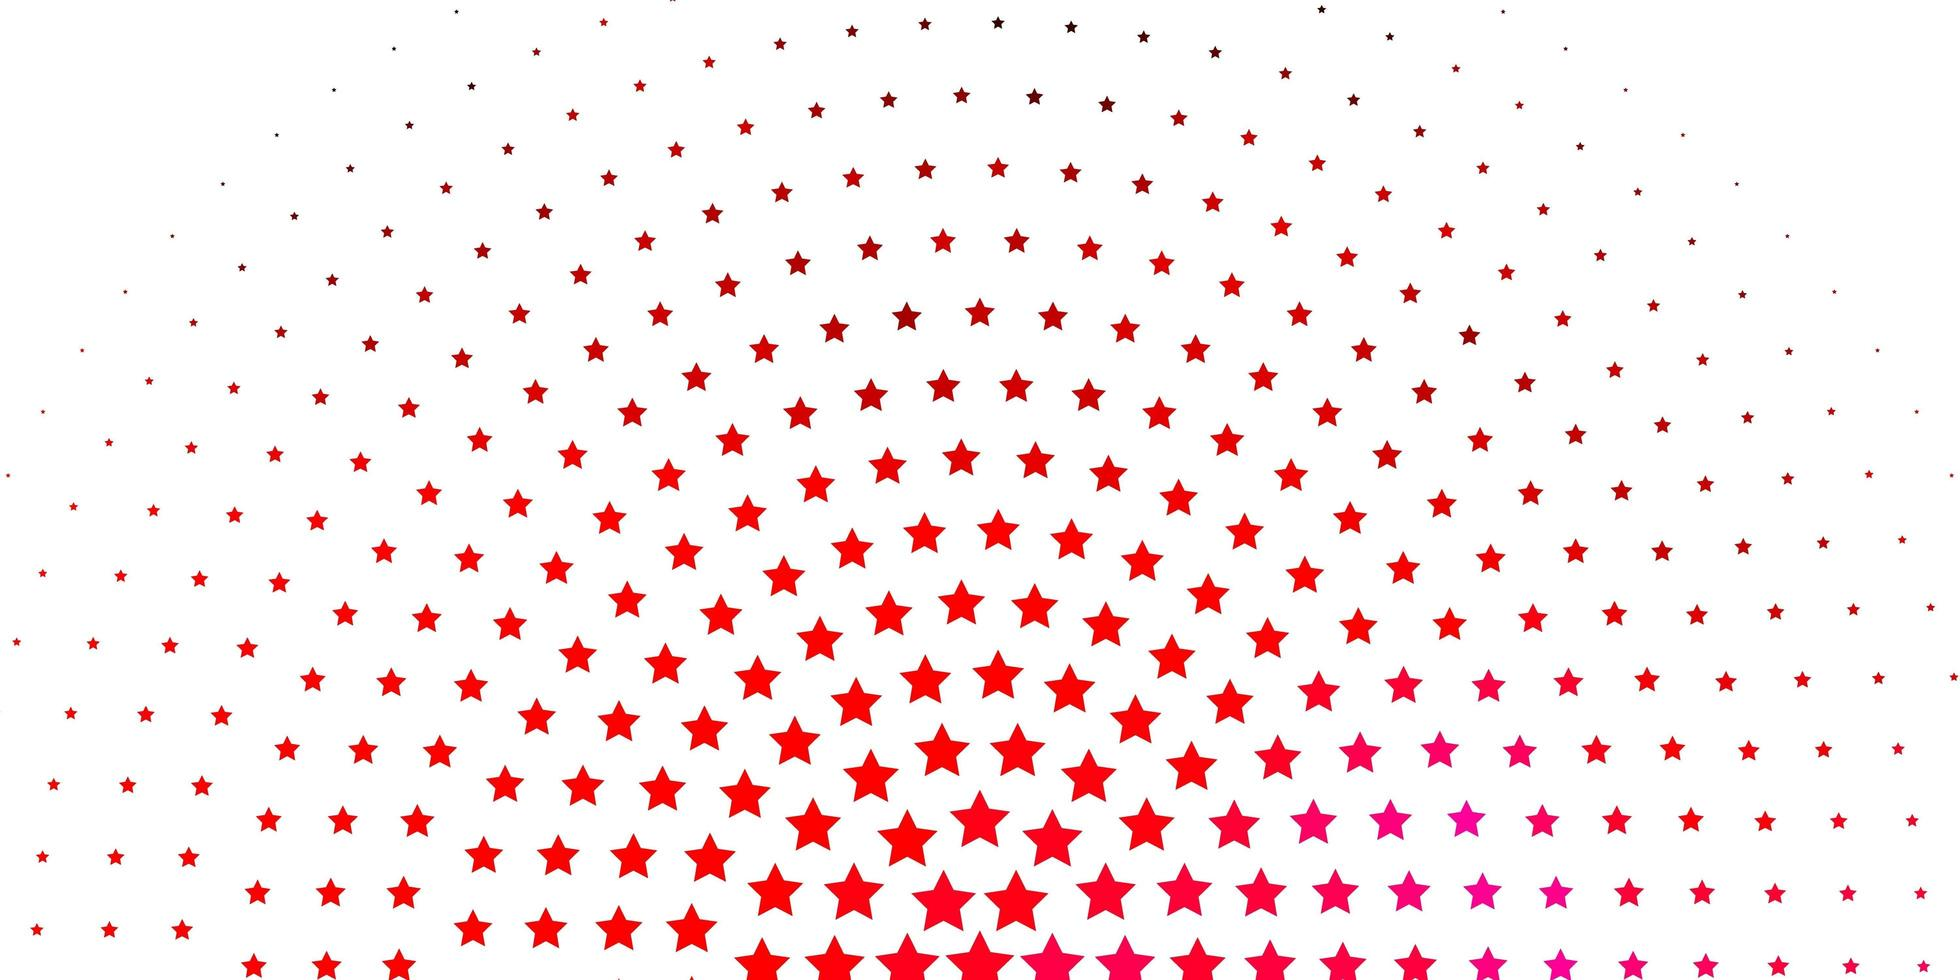 Light Pink pattern with abstract stars. vector